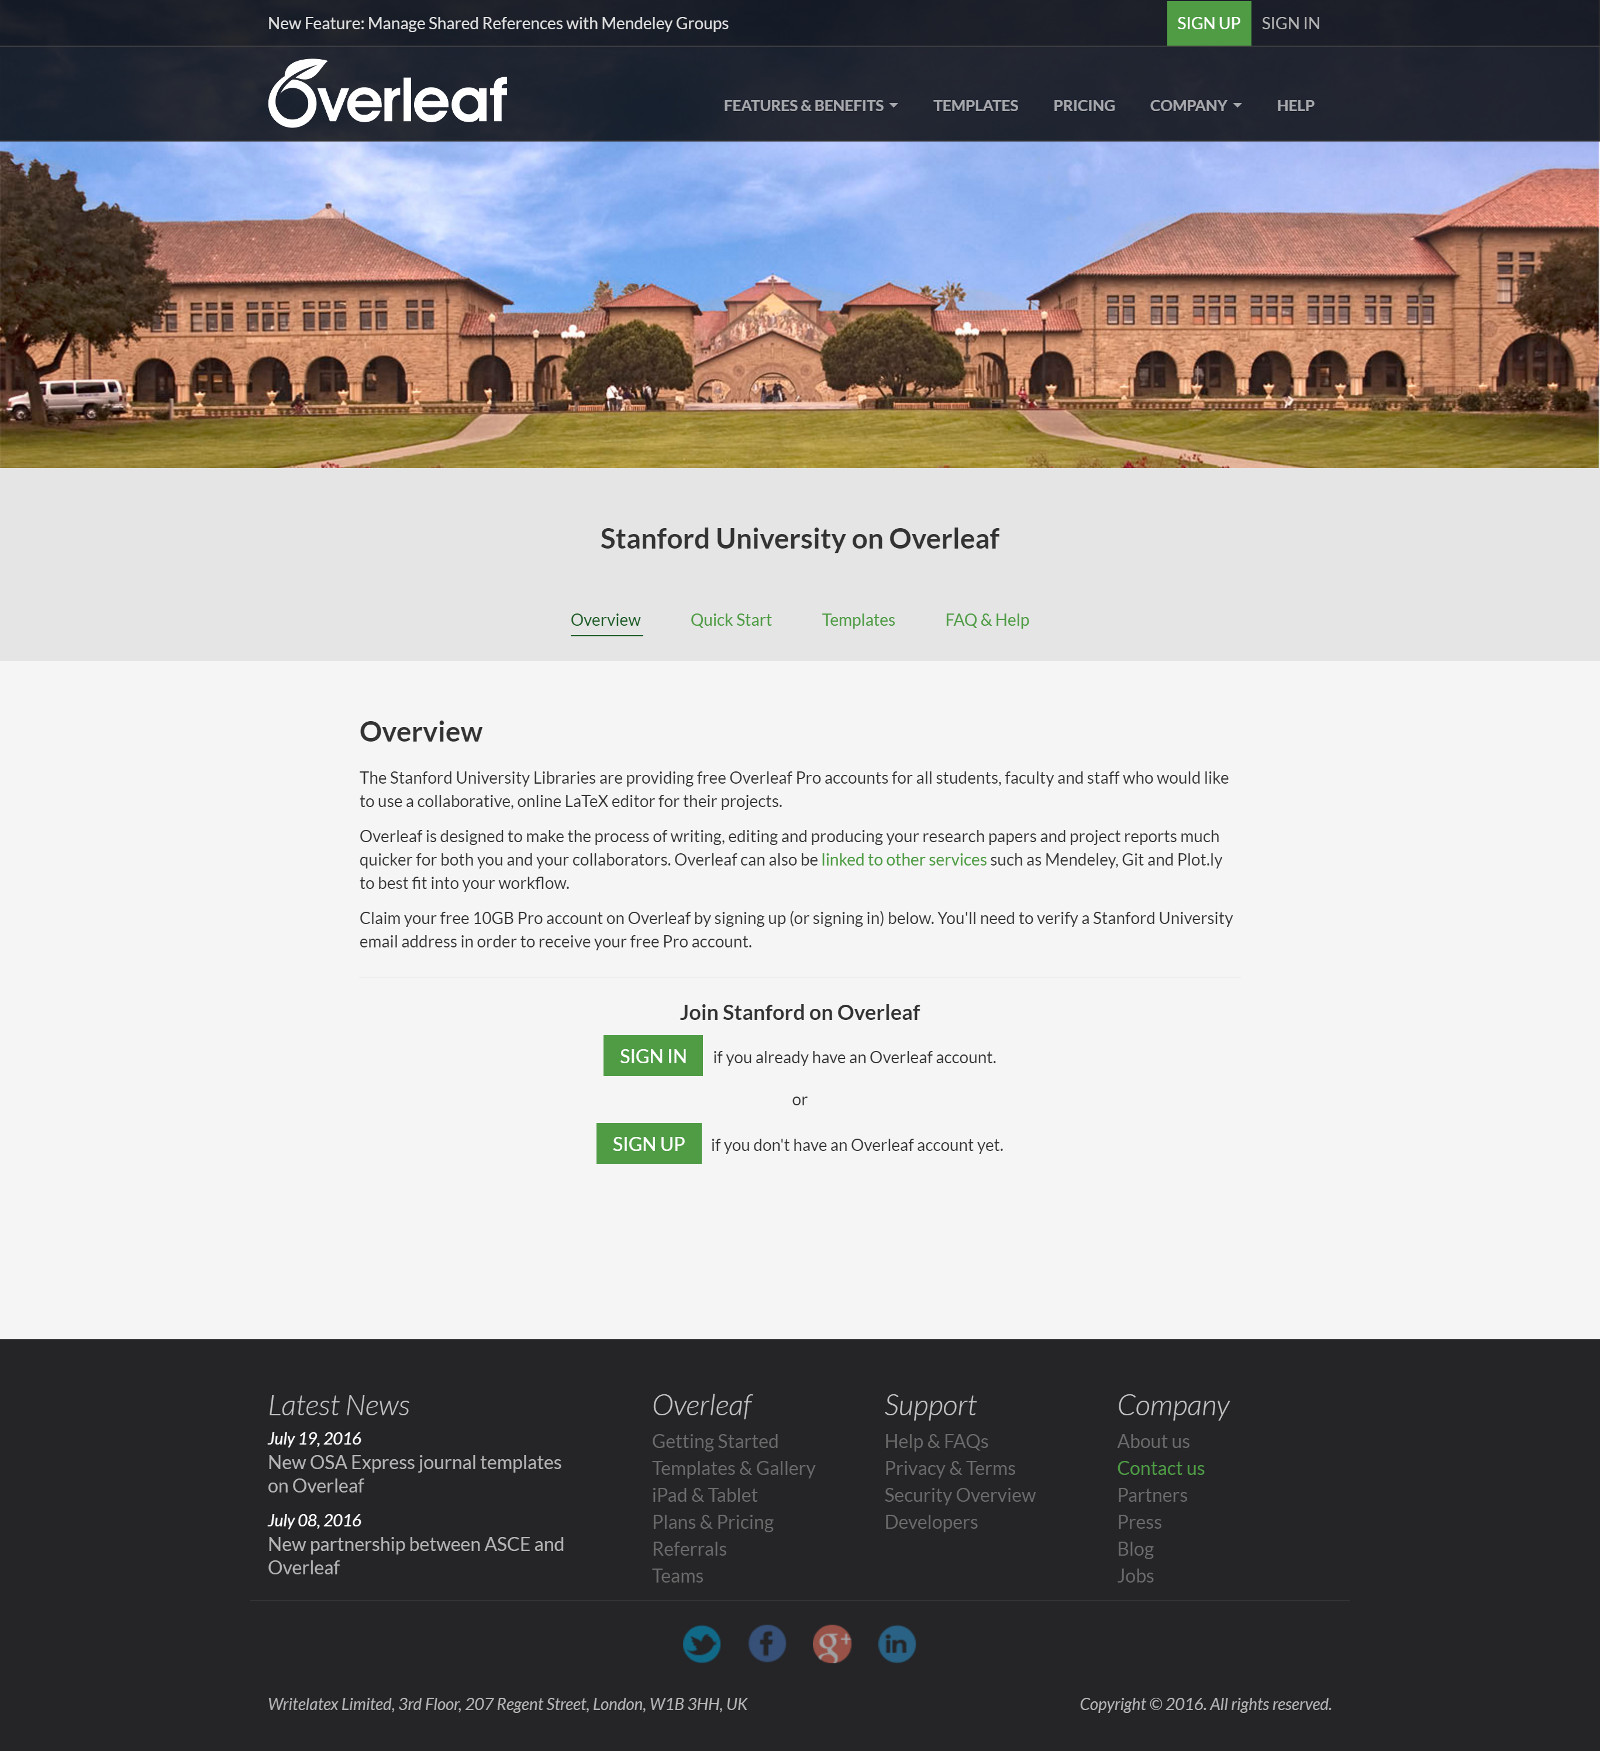 Screenshot of the Stanford University portal on Overleaf